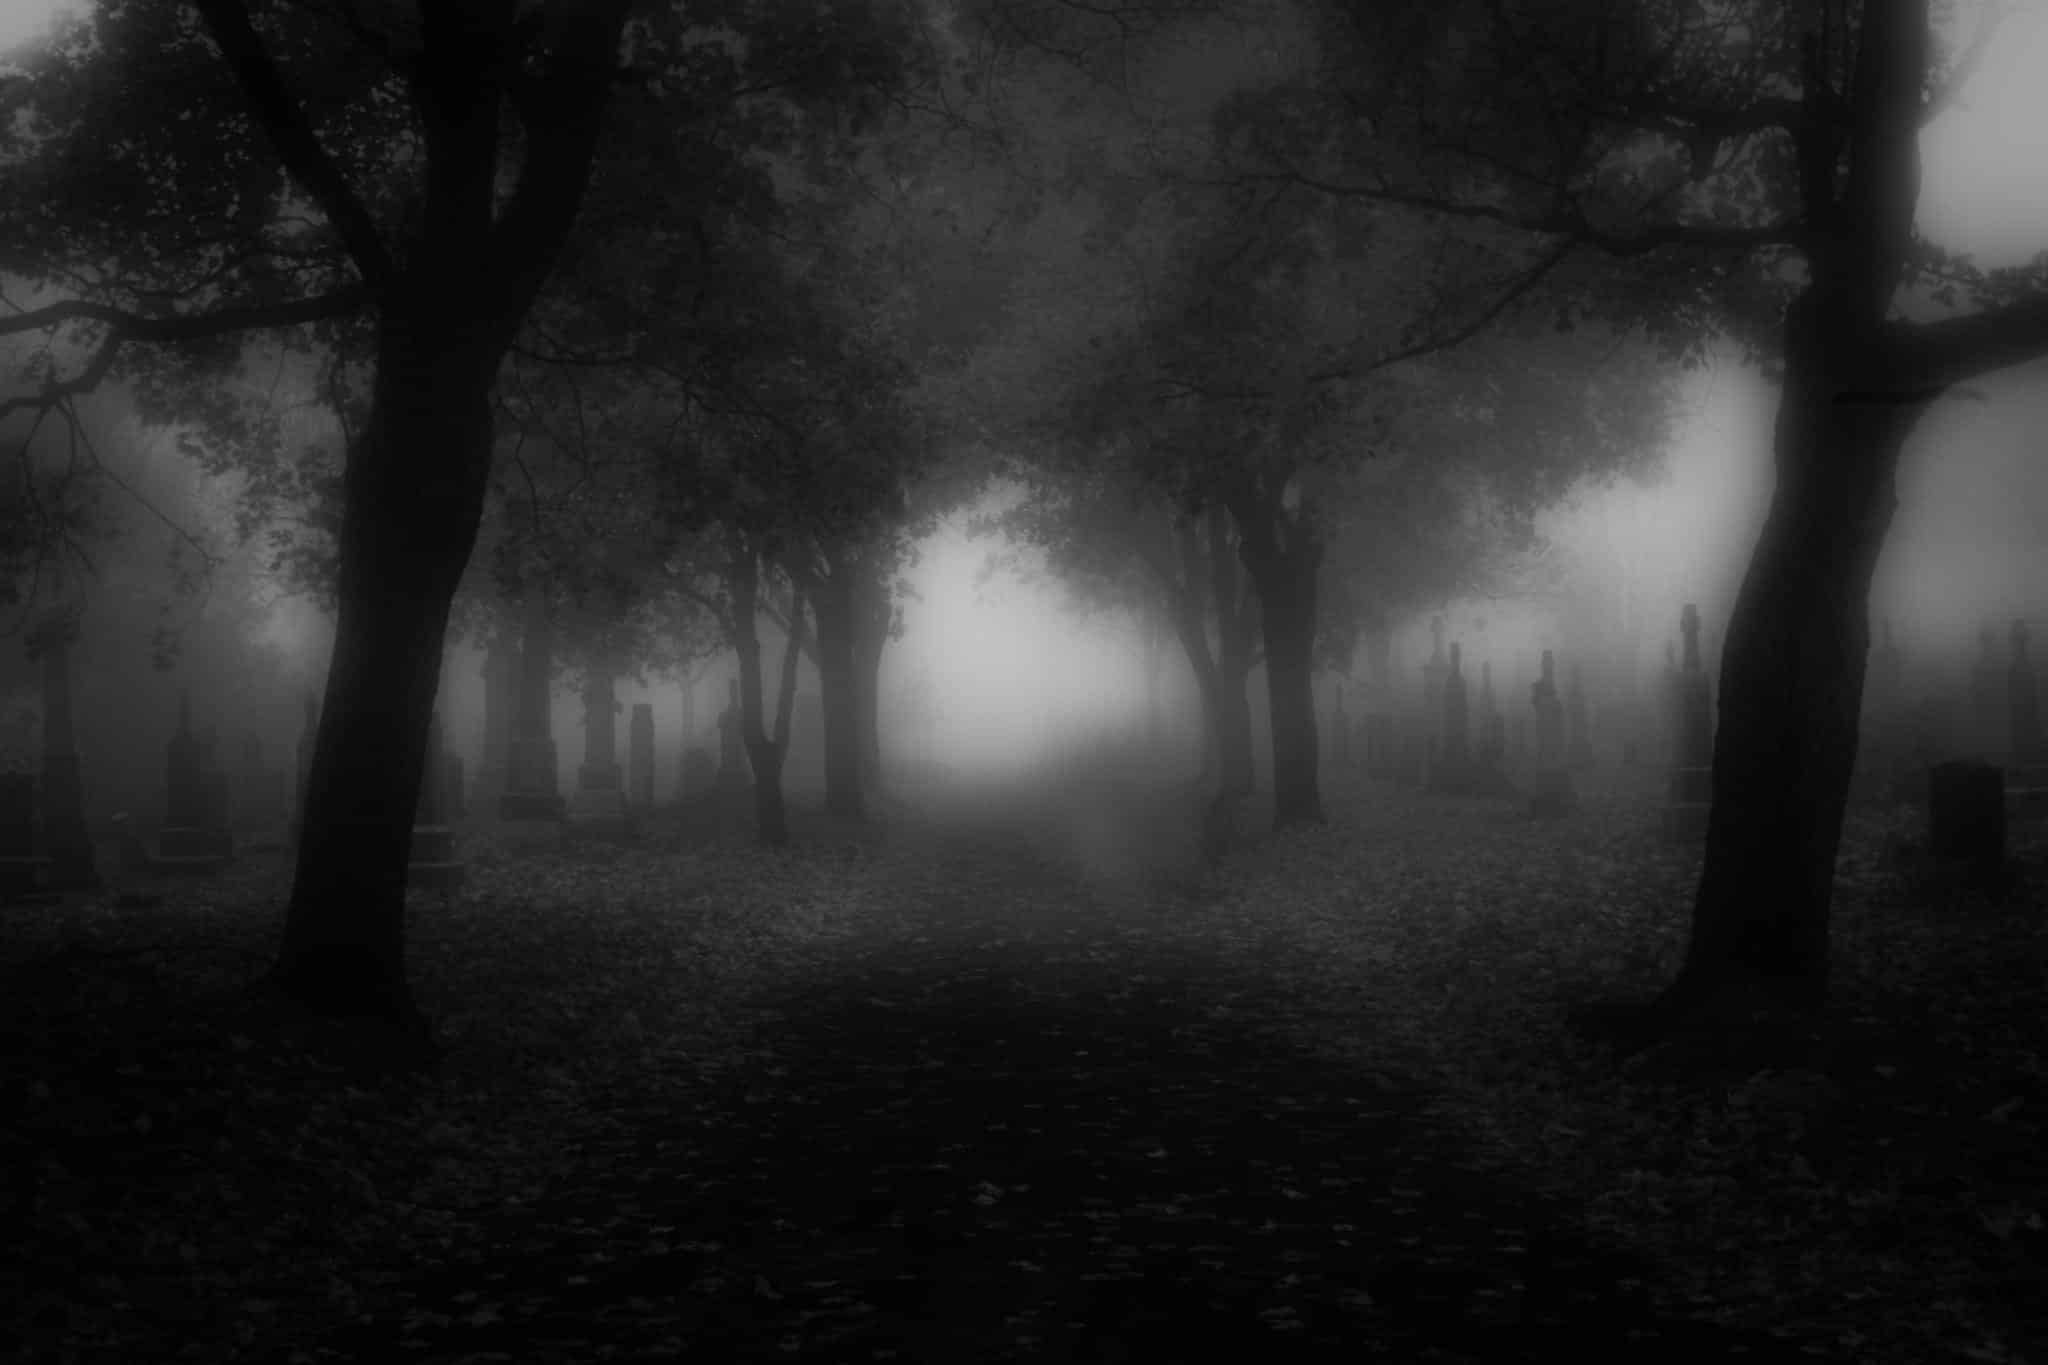 आदतें - Aadetein, Mist in Forest